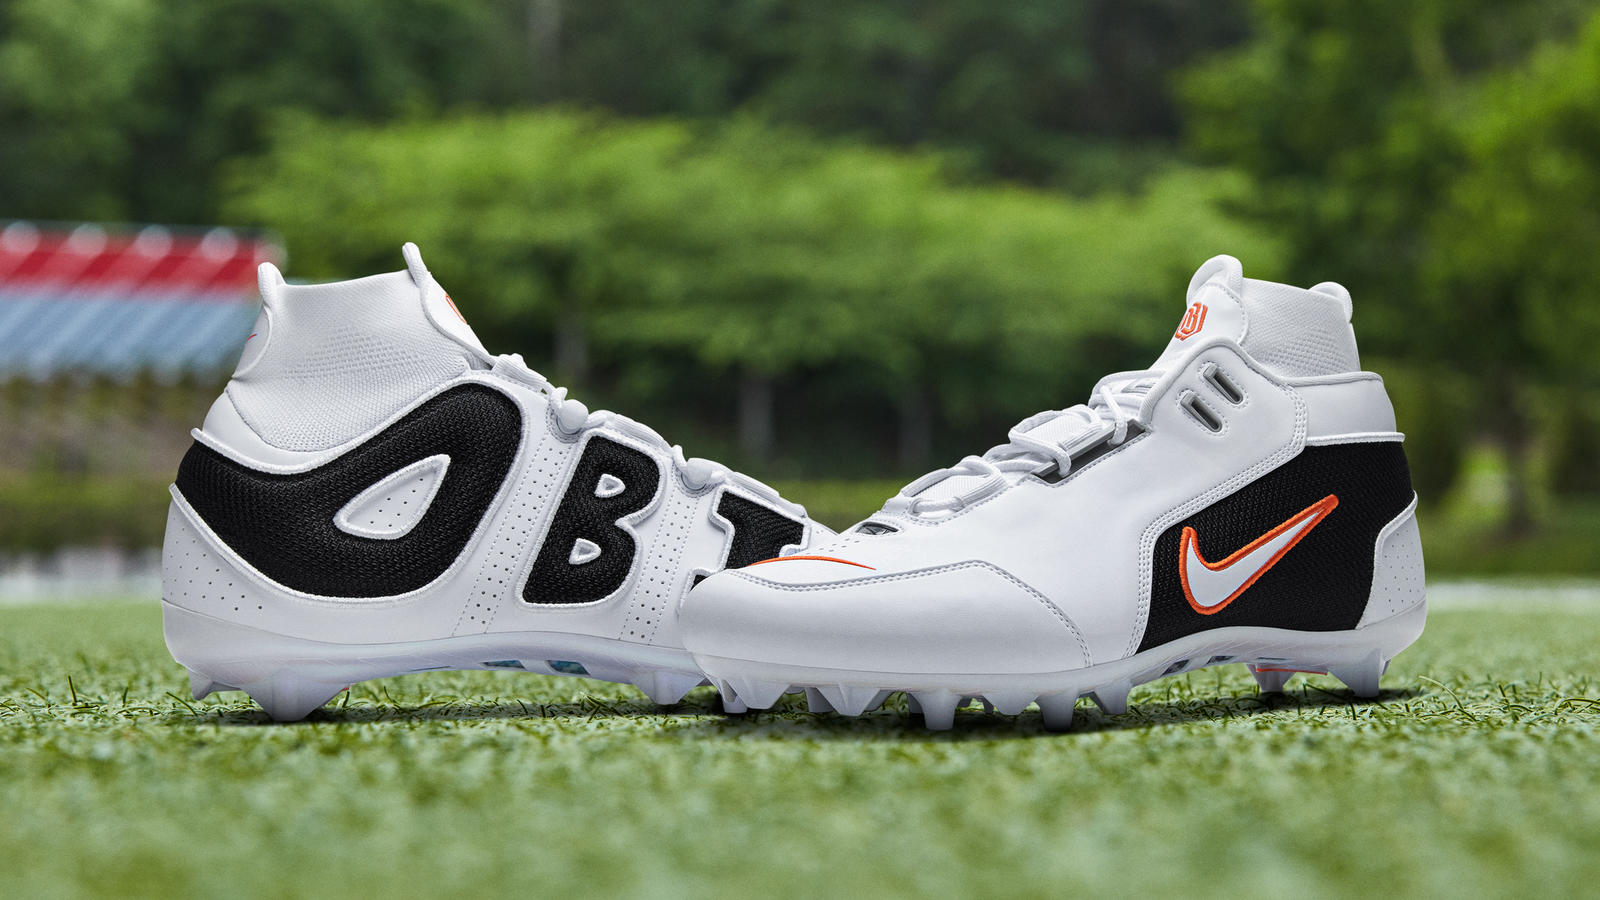 OBJ Week 9 Pregame Cleat Air Foamposite One Alternate Galaxy 2